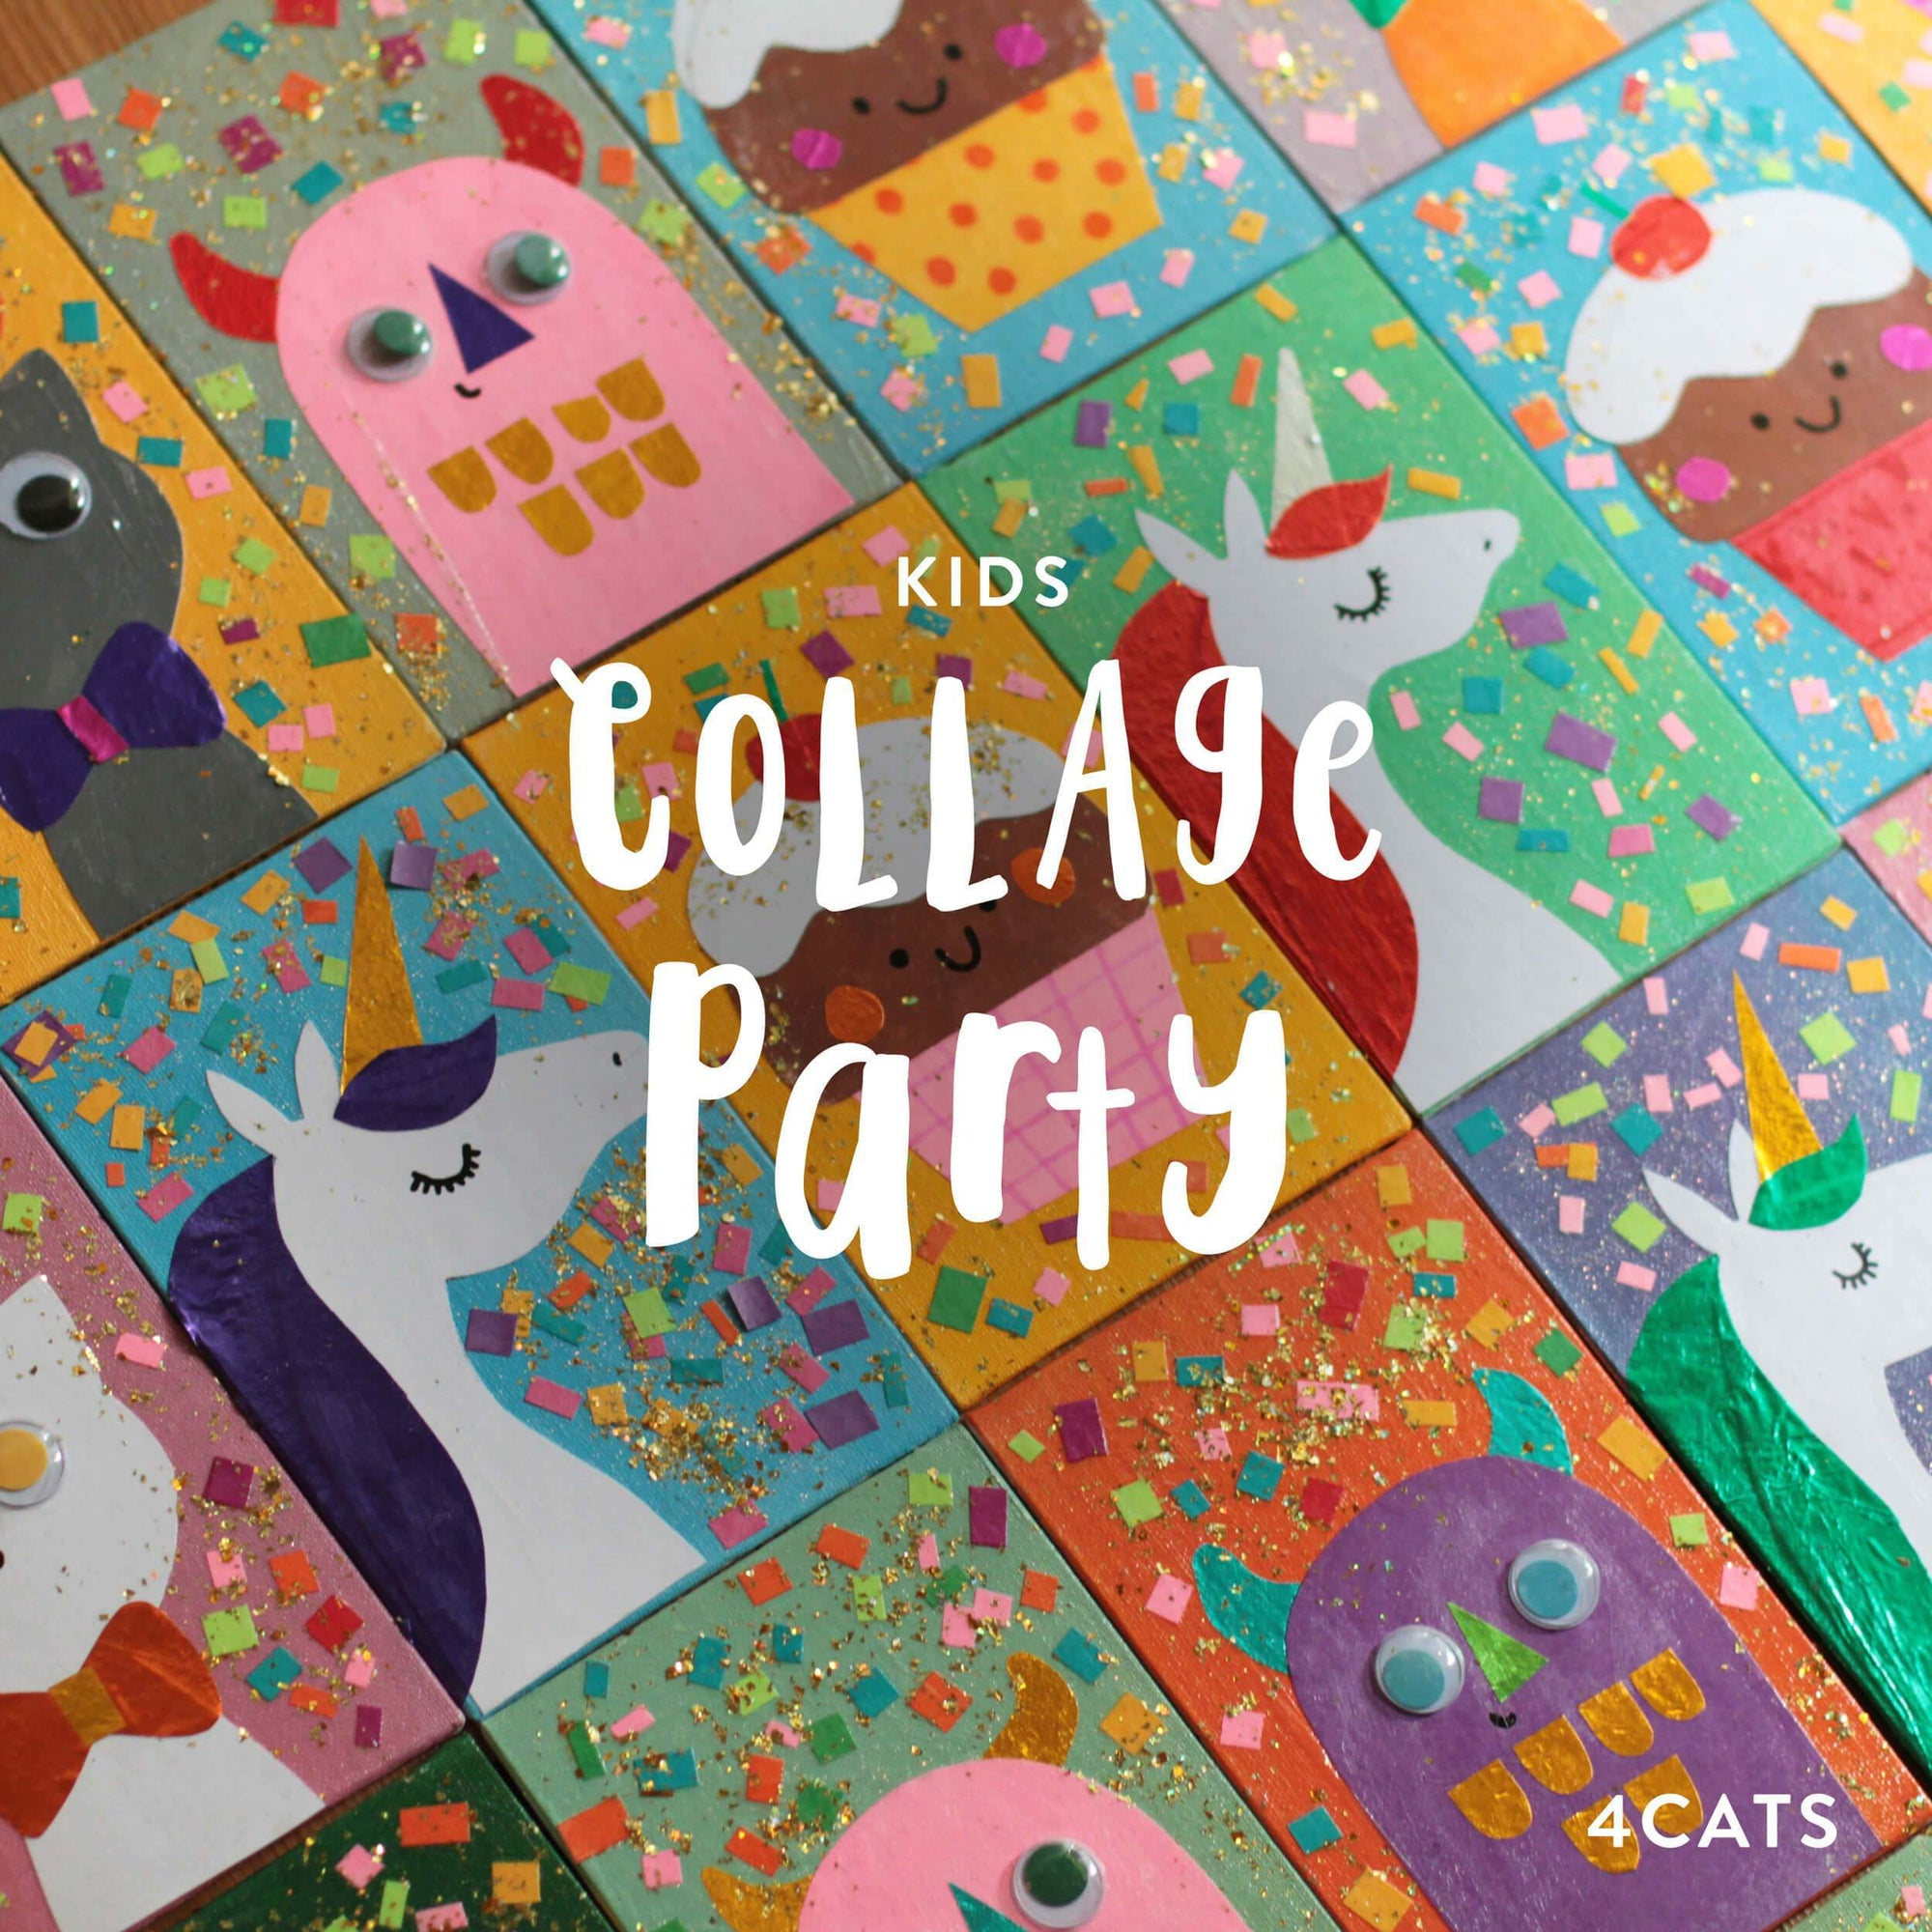 Kids Collage Party